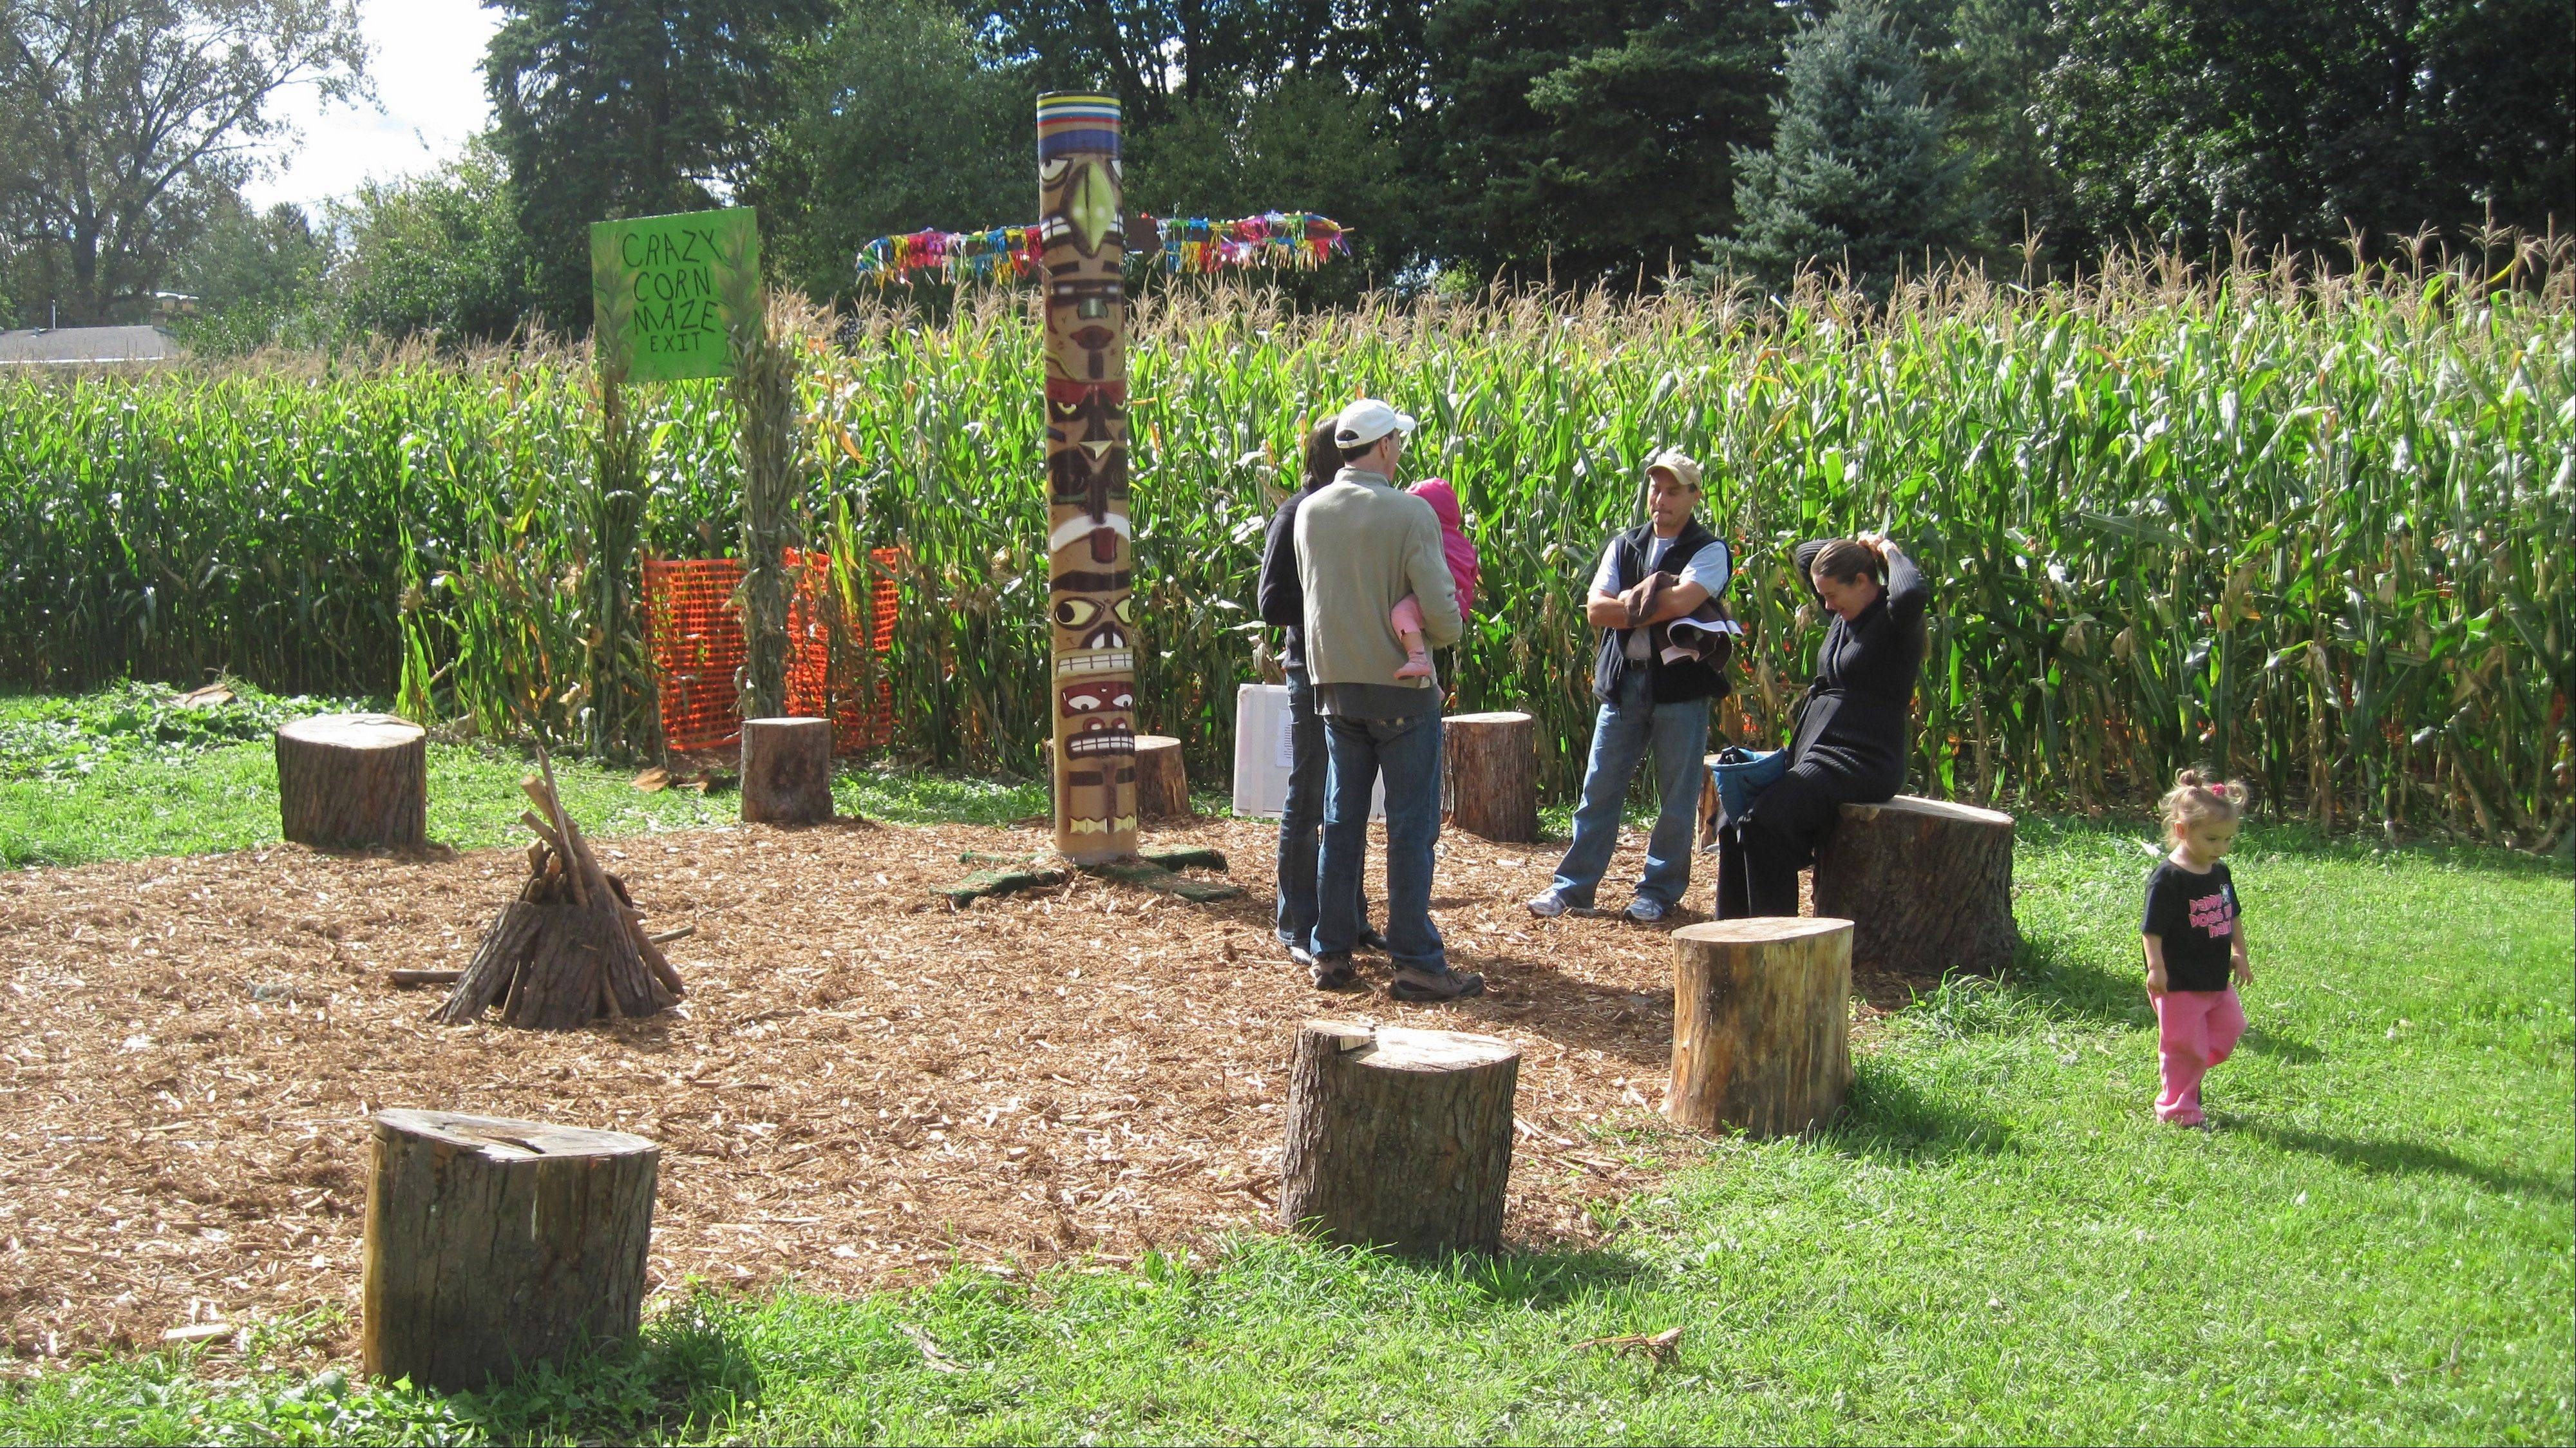 Visitors to Autumn Fun Fest at Kinsch Village Florist await their turn in the corn maze.